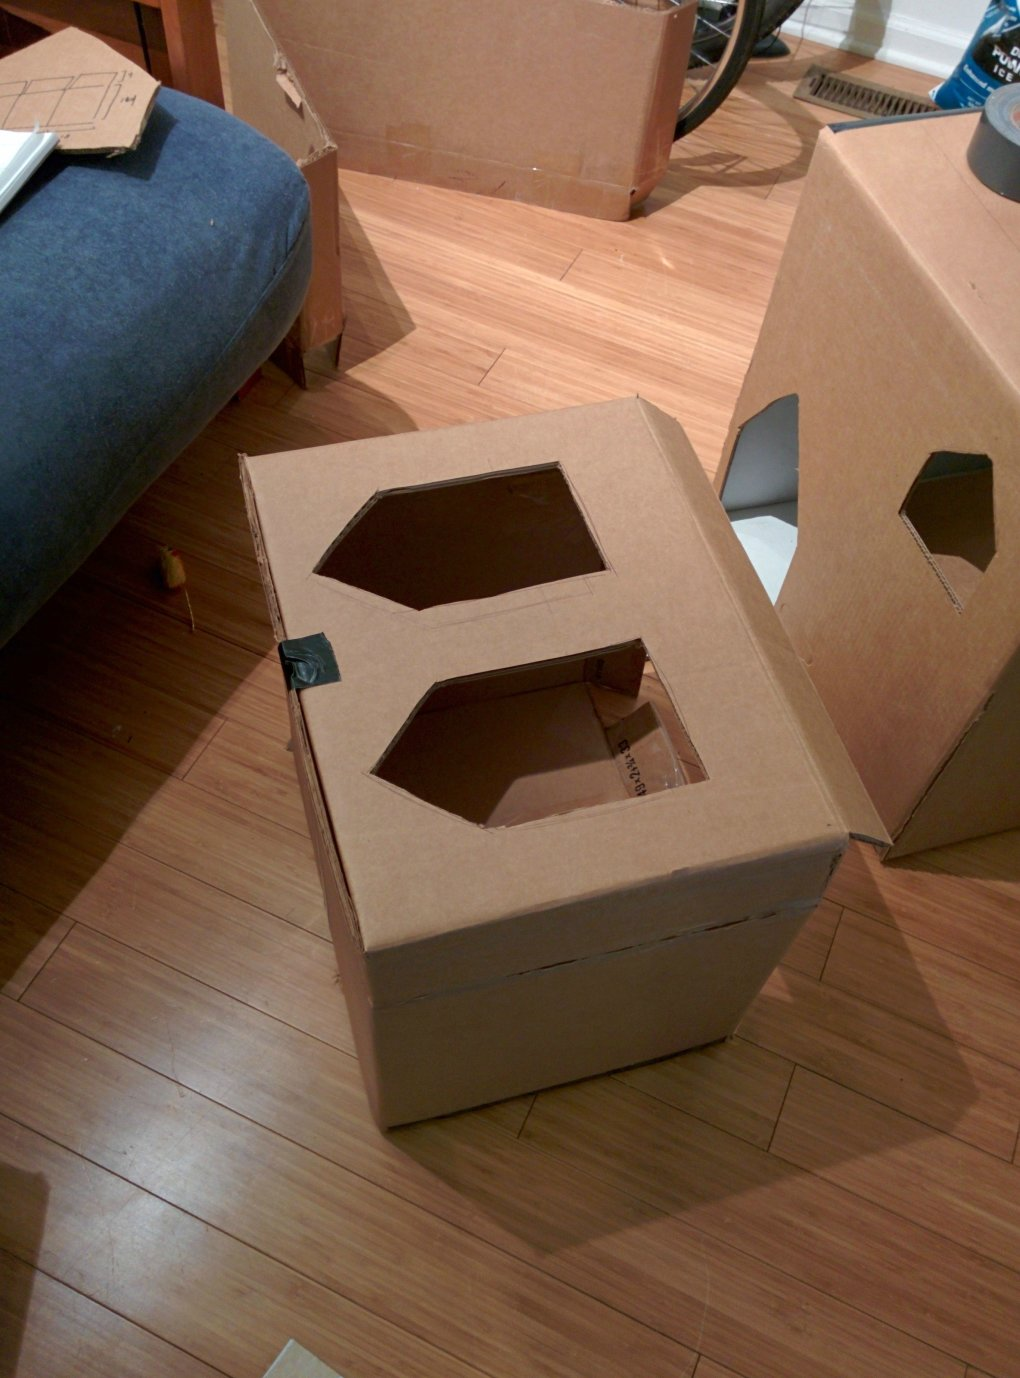 oe9z62q - why don't we build cardboard castle to our cats? this is how to do it.